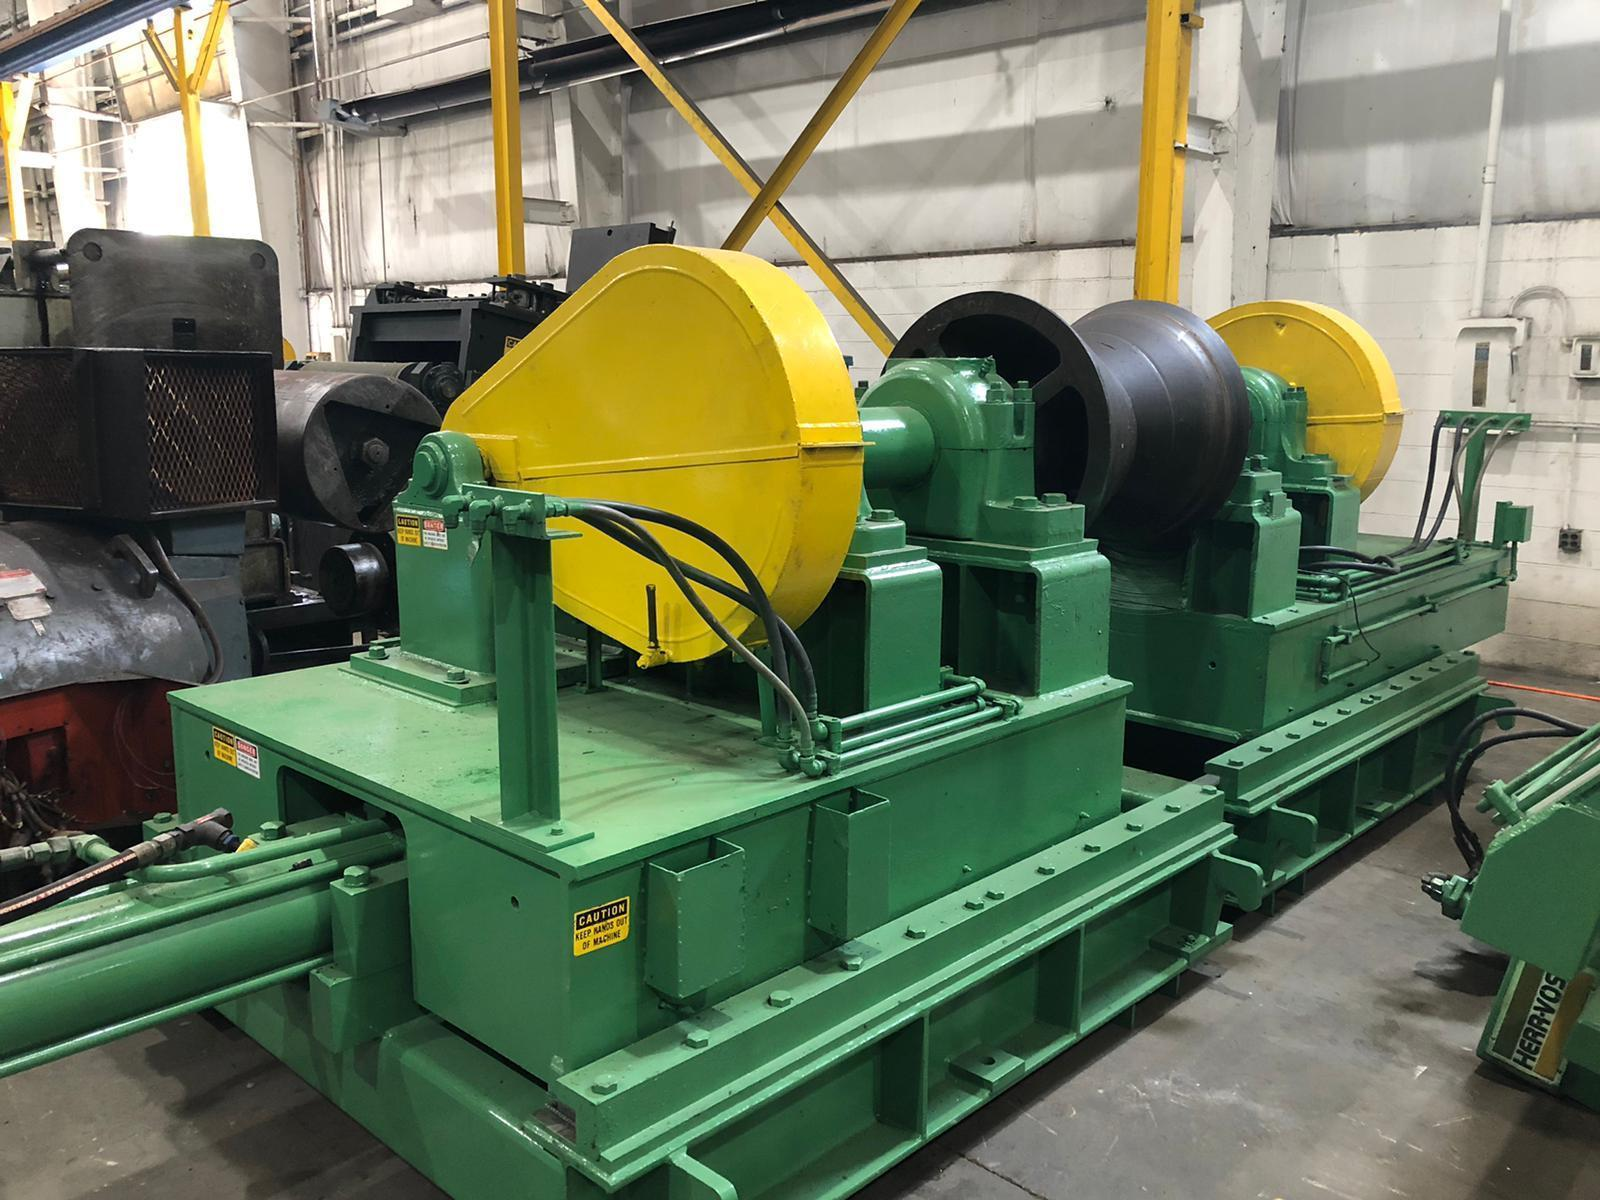 """72"""" x 60,000# Herr Voss Uncoiler with Coil Car and Peeler Hold Down Roll"""